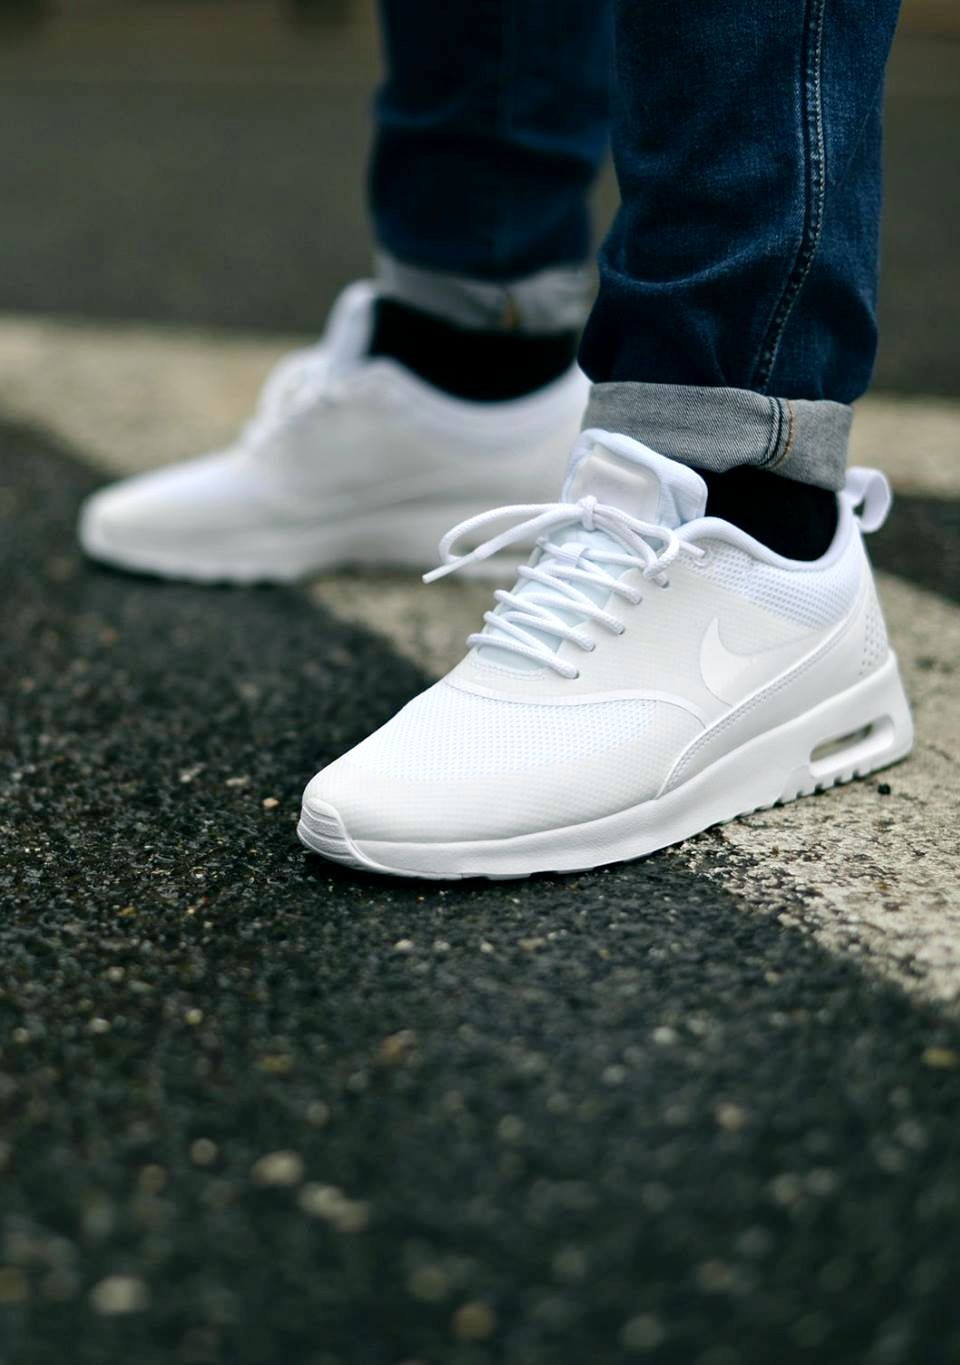 7655ccd6ddc308 Ultra Clean NIKE Air Max Thea All White Nike Free Shoes